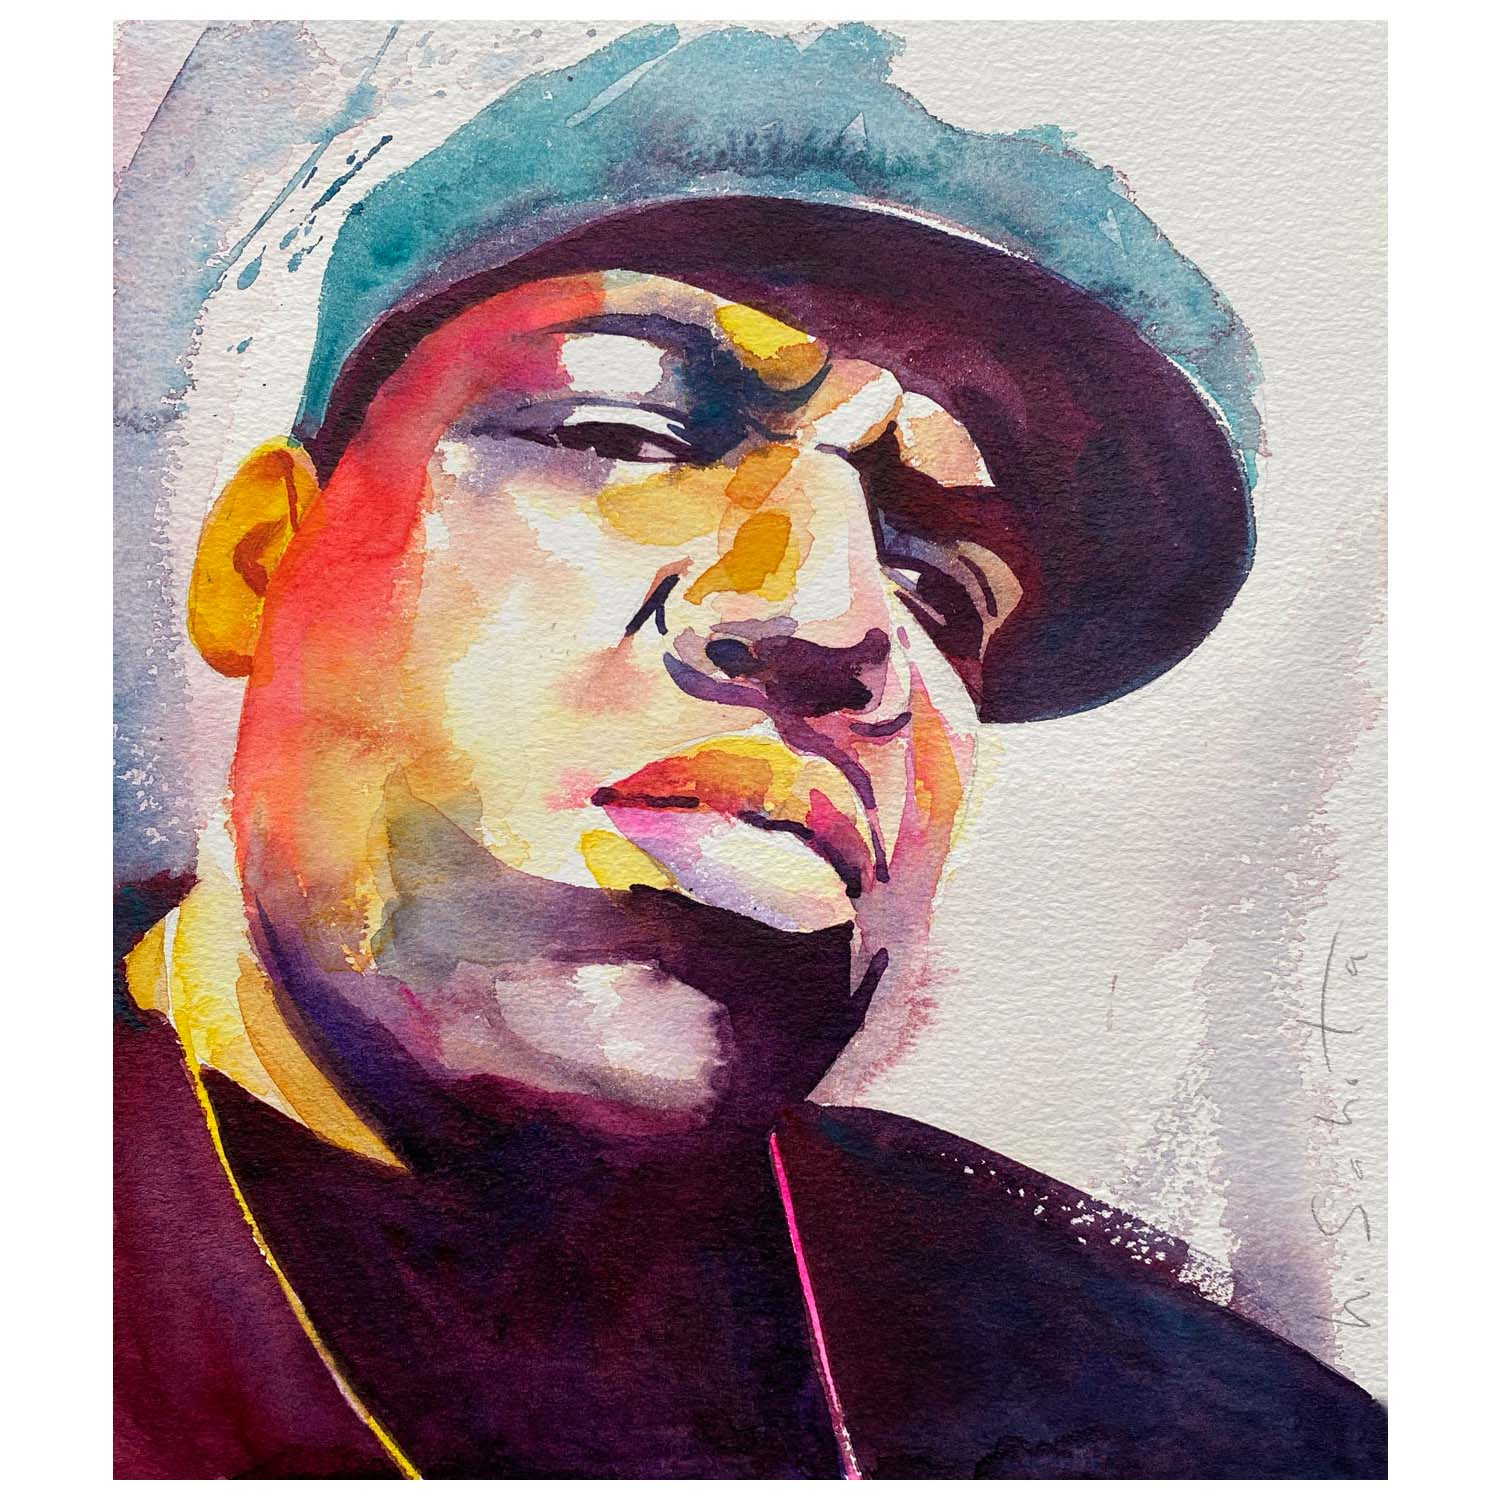 Harinder Sahota Notorious B.I.G Watercolour on paper 25x26cm £100